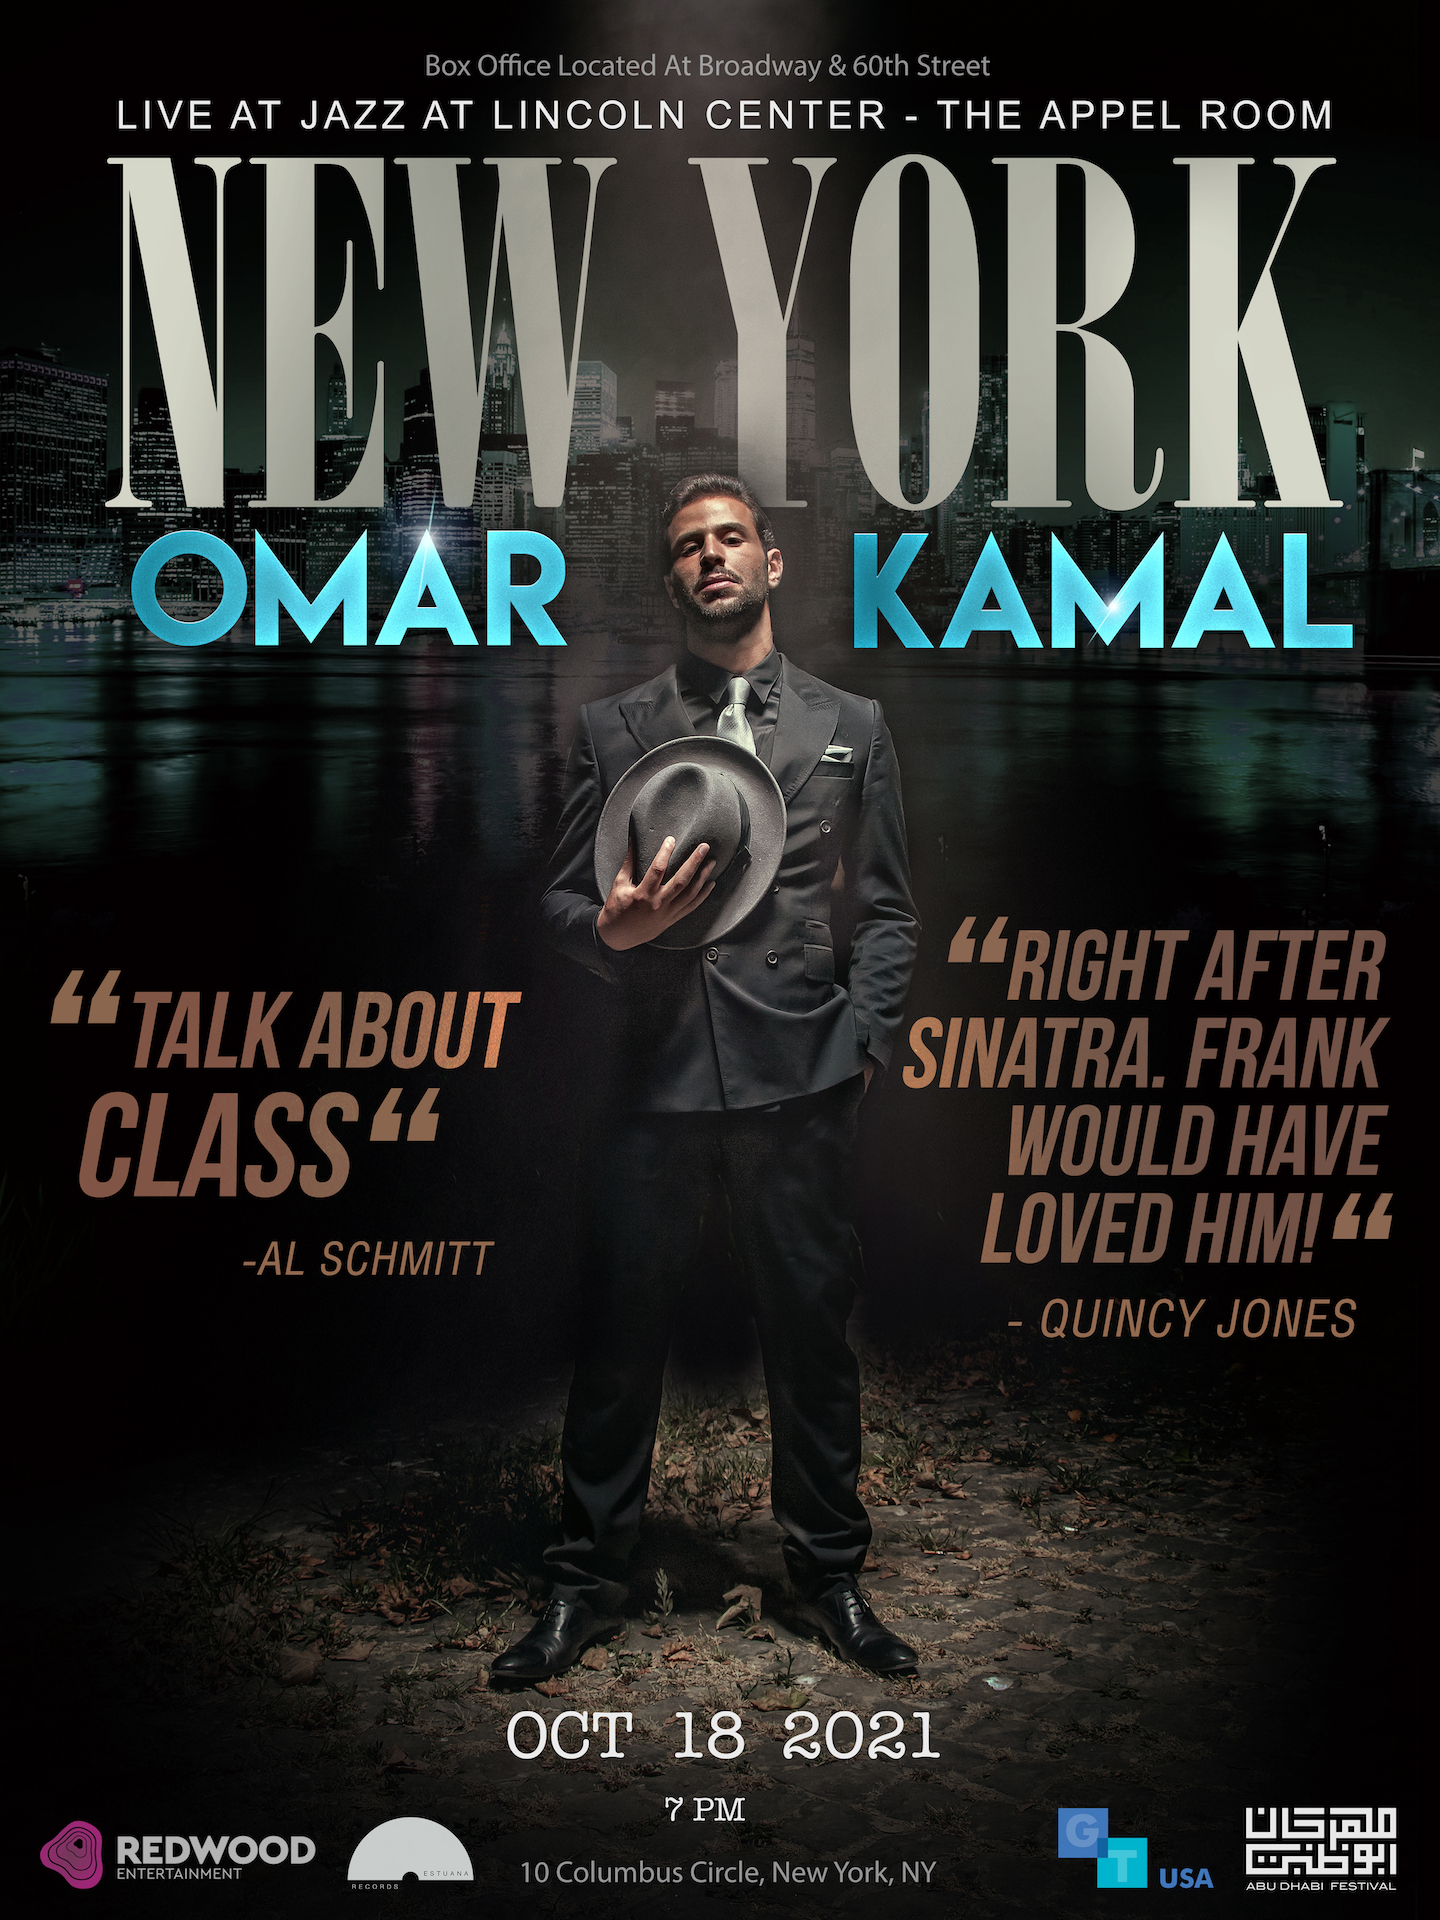 """Omar Kamal """"The Palestinian Frank Sinatra"""" To Appear At The Appel Room Live At Jazz At Lincoln Center October 18th, 2021"""